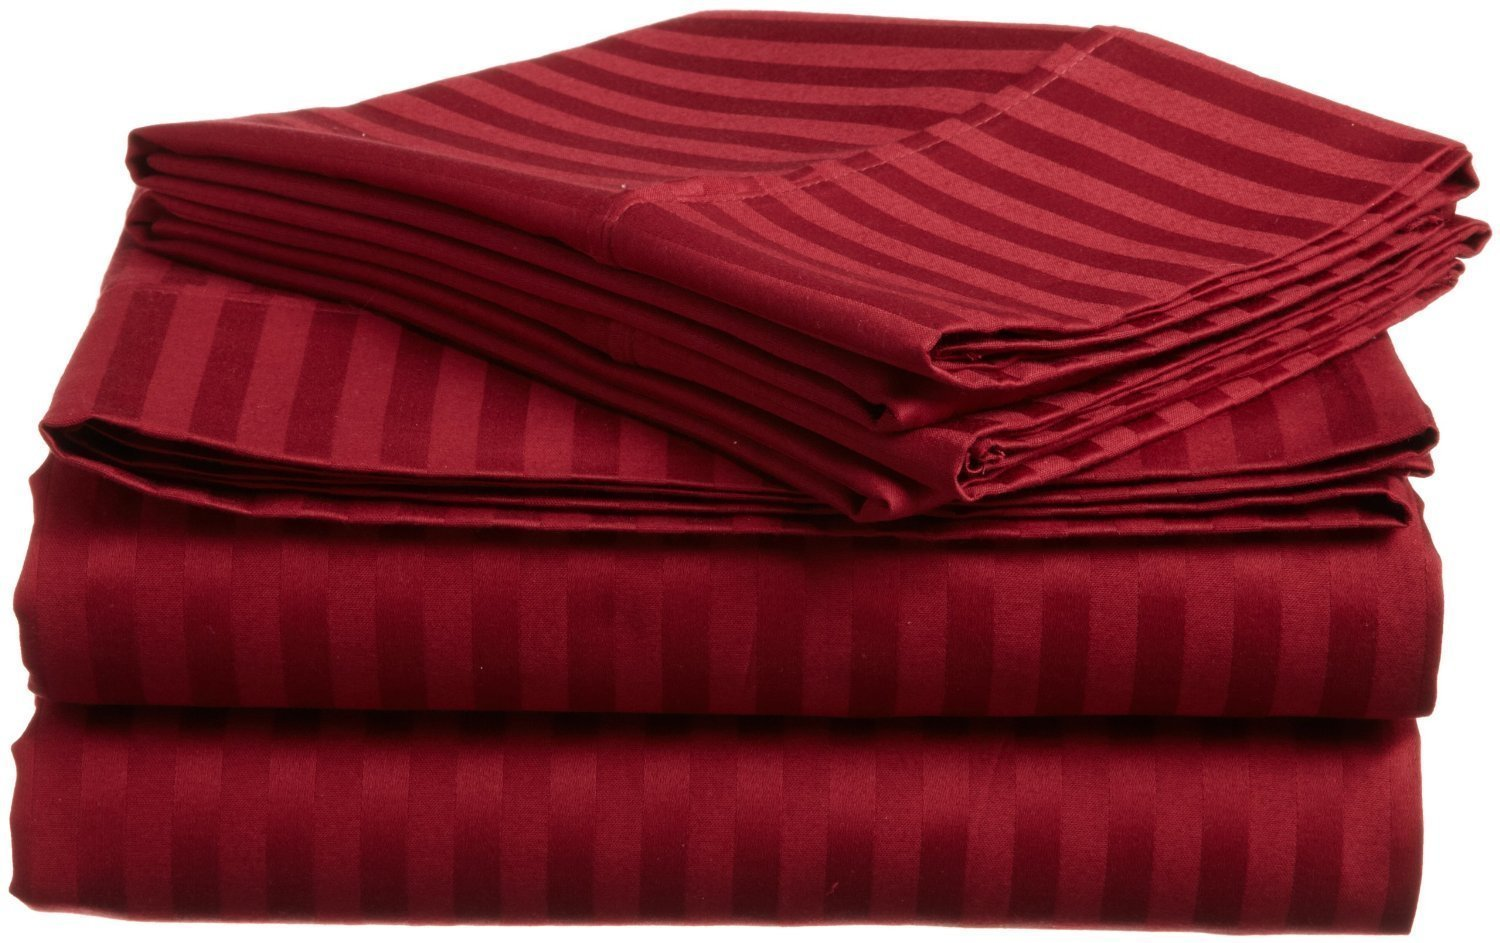 Craftique Beddings 600 Thread Count Pure Pure Egyptian Cotton Super Soft 3-Piece (Flat Sheet + Pillow Cases) California King Striped Burgundy